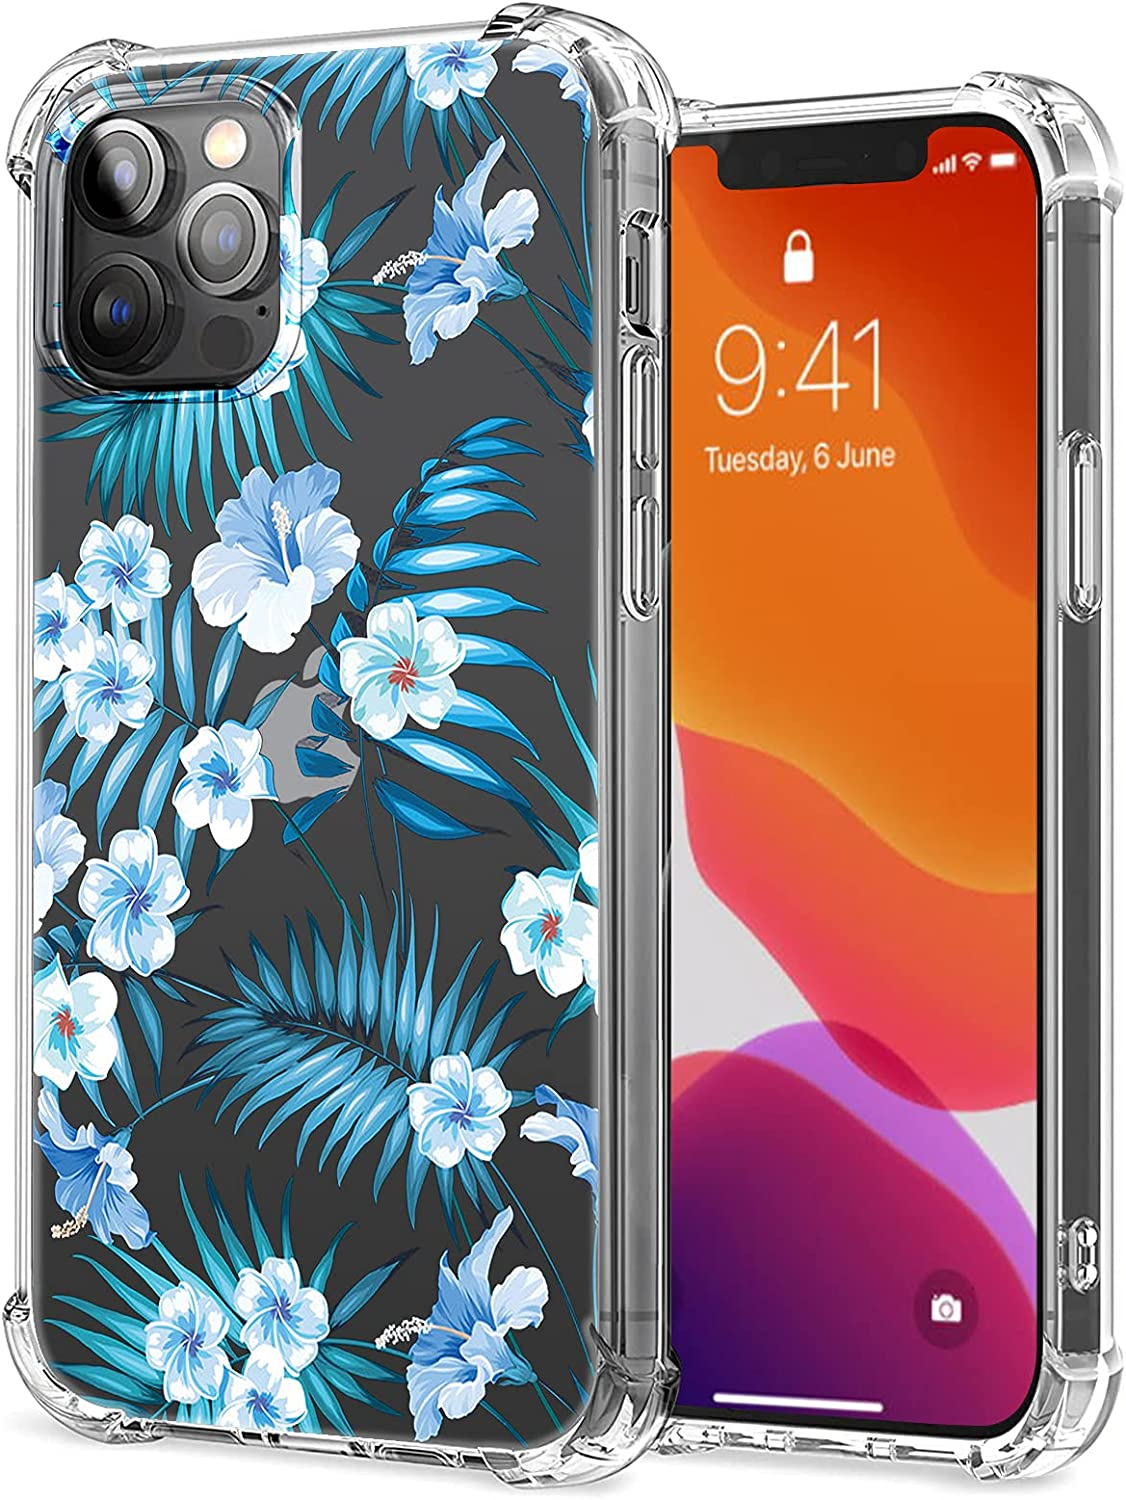 iPhone 13 Pro Max 5G Case Slim Fit Shockproof Protective Flower iPhone 13 Pro Max Cover Cute Women Girls Flexible TPU Silicone Scratch-Resistant Rubber Case Cover for iPhone 13 Pro Max 5G 6.7''-3